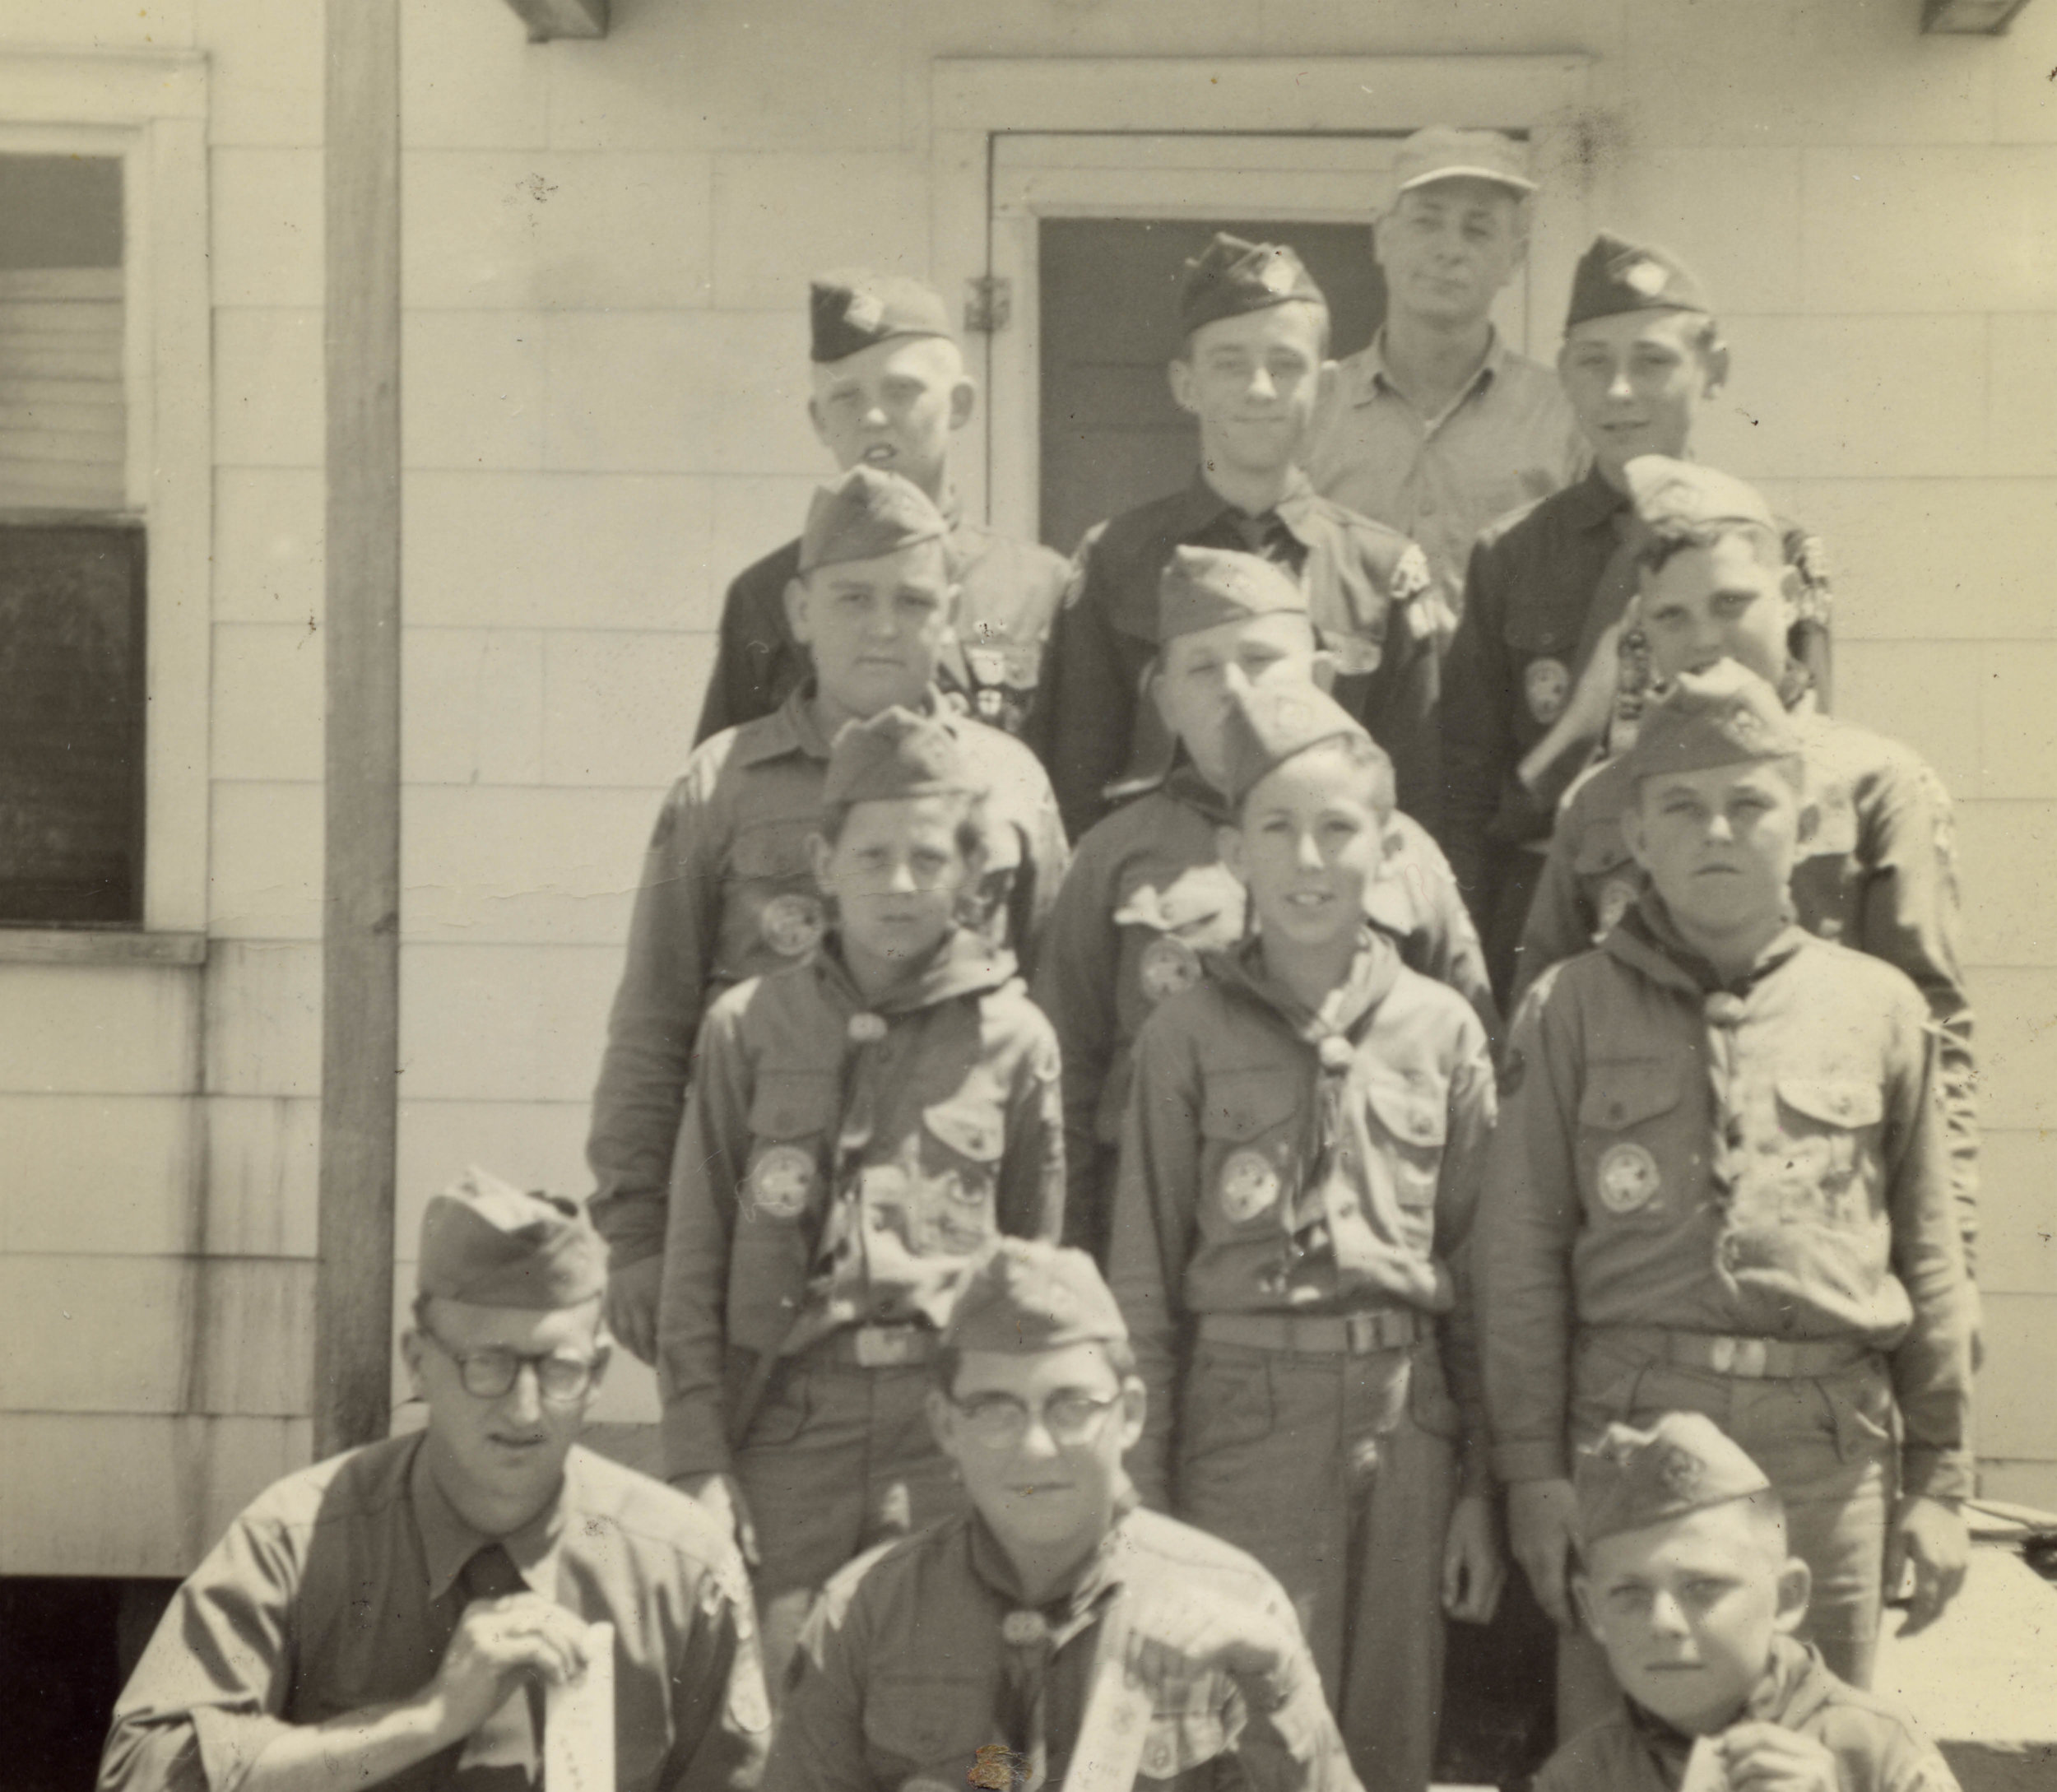 Stacy Boy Scout Troop in front of the Stacy Woodmen of the World Lodge